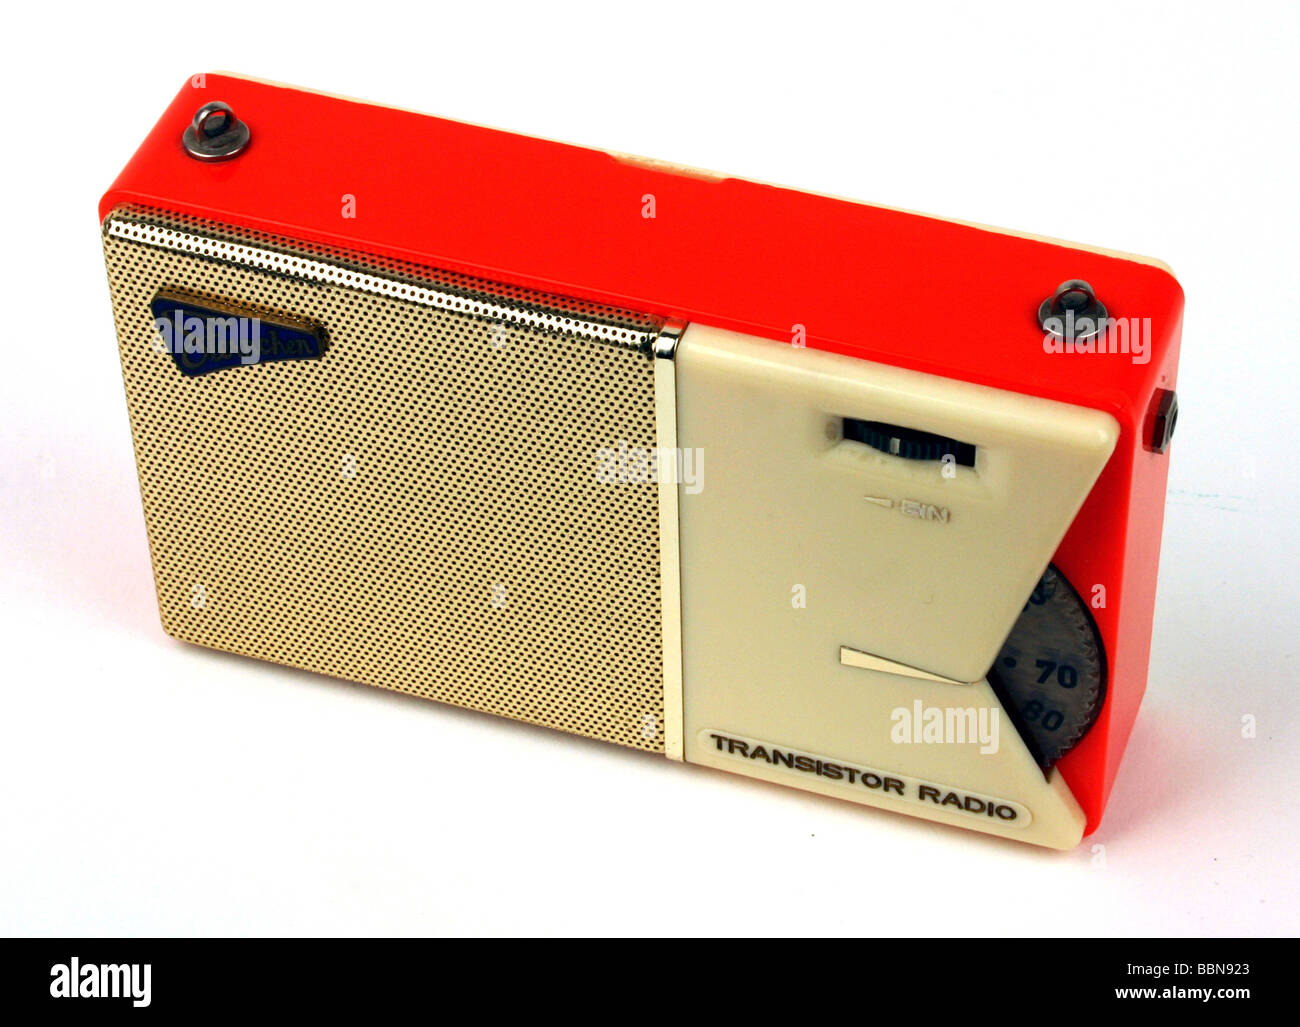 broadcast, radio, radio sets, pocket radio 'Sternchen', original version with metal supplement, made by - Stock Image